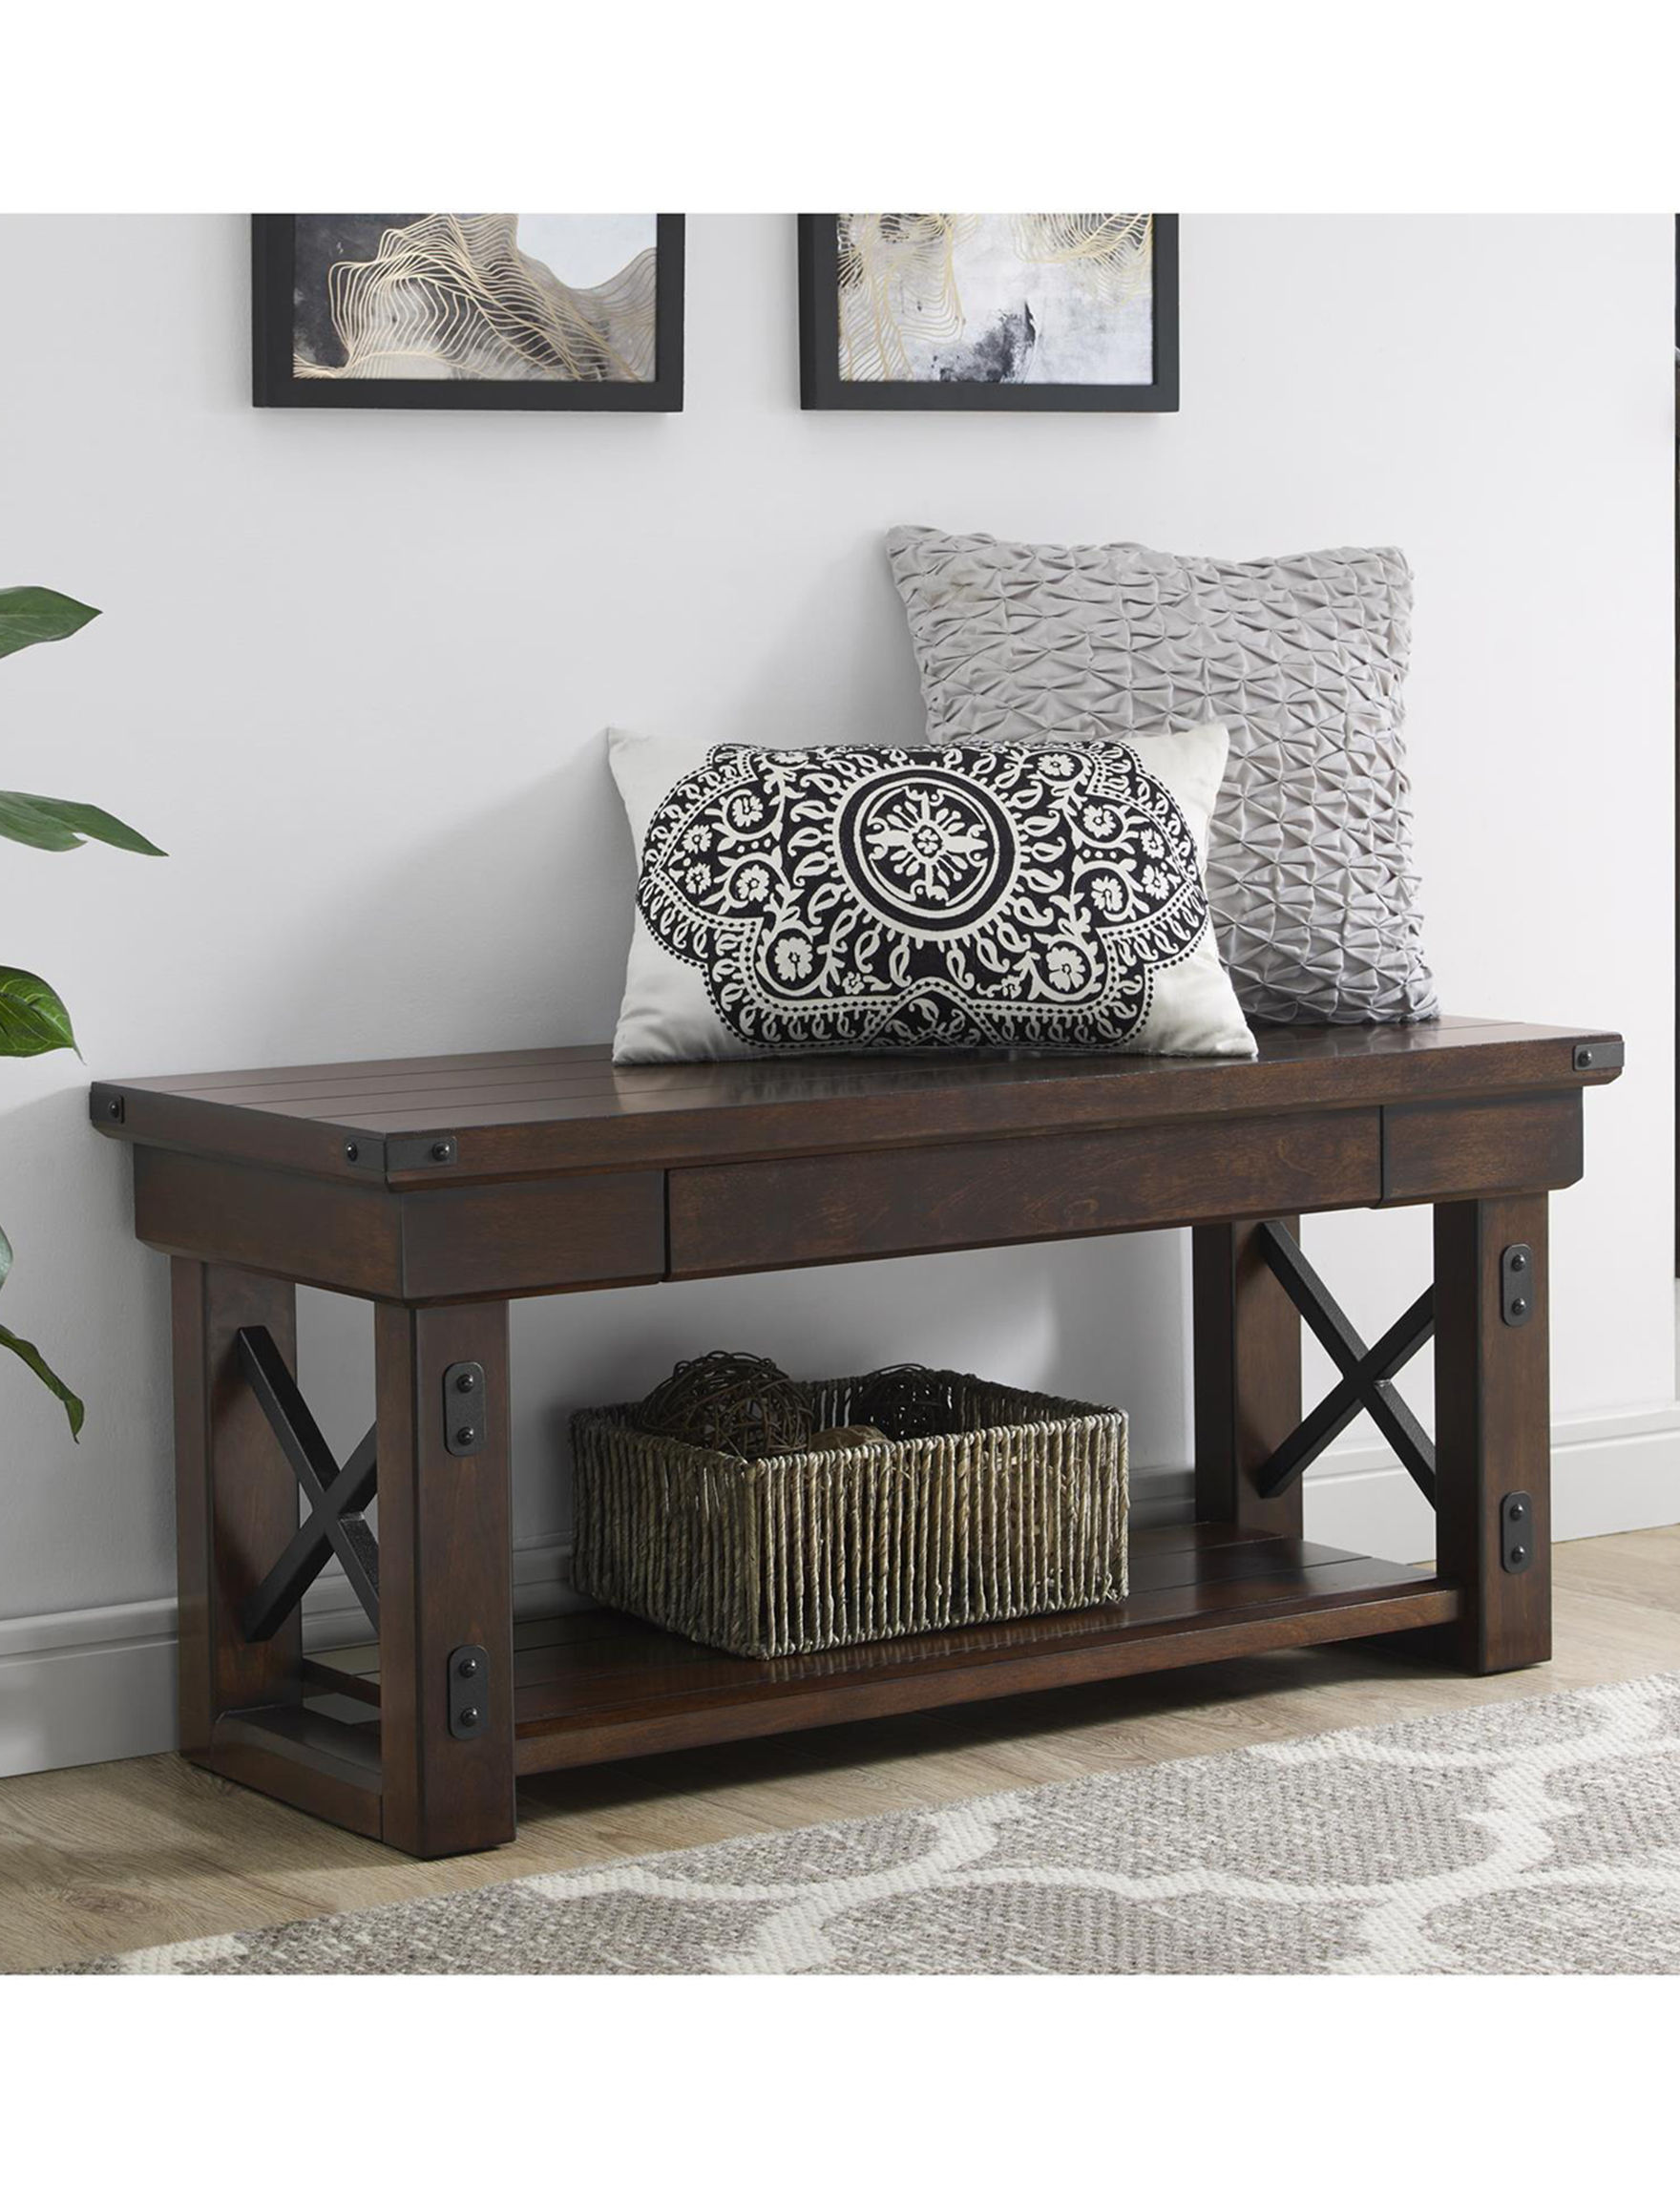 Ameriwood Espresso Ottomans & Benches Entryway Furniture